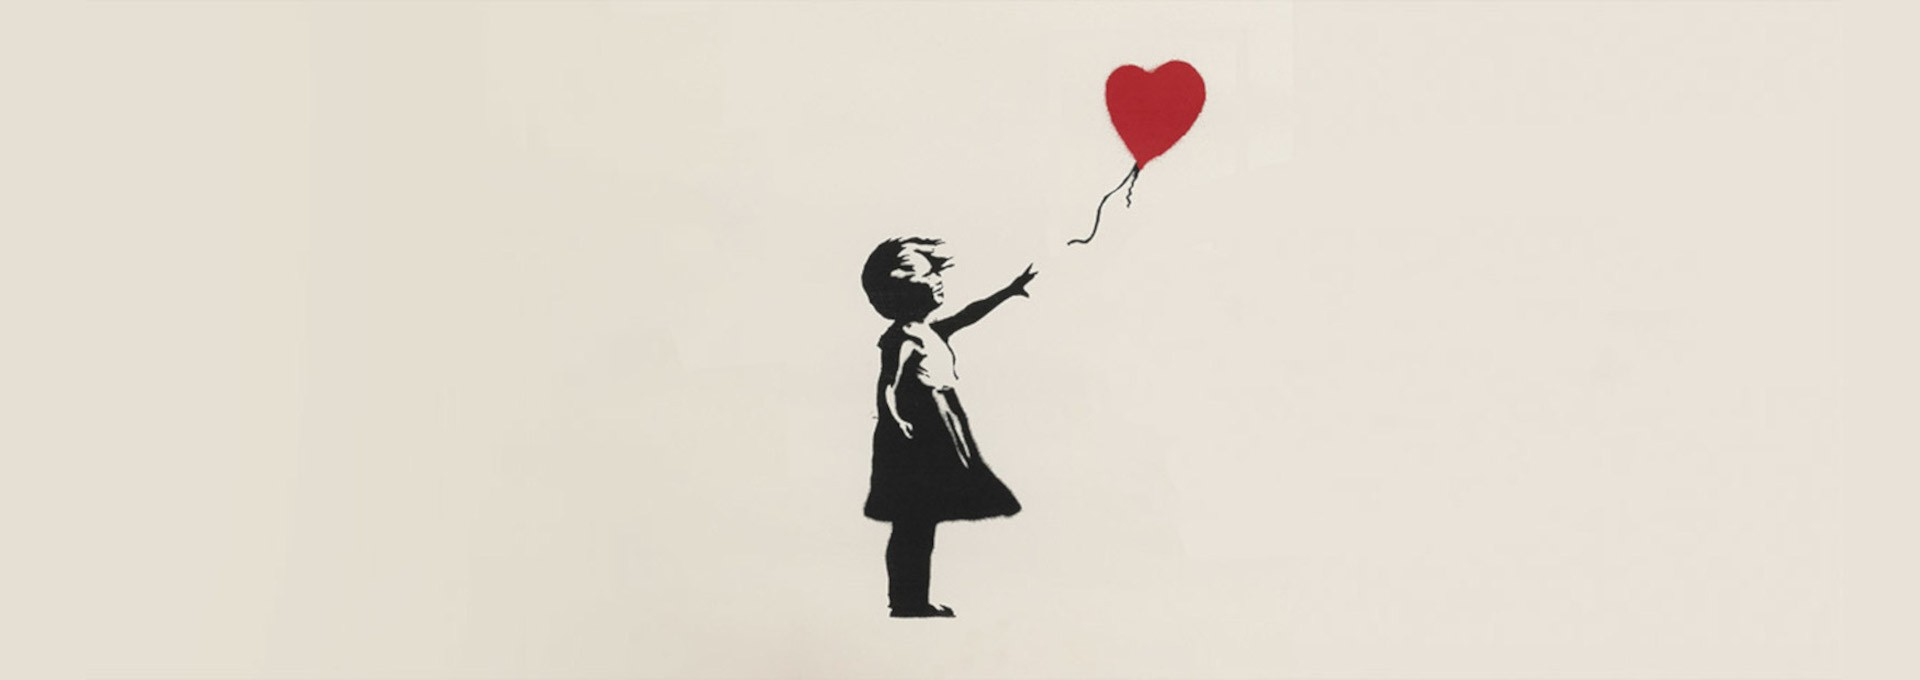 <br><br>BANKSY Building Castles in the Sky